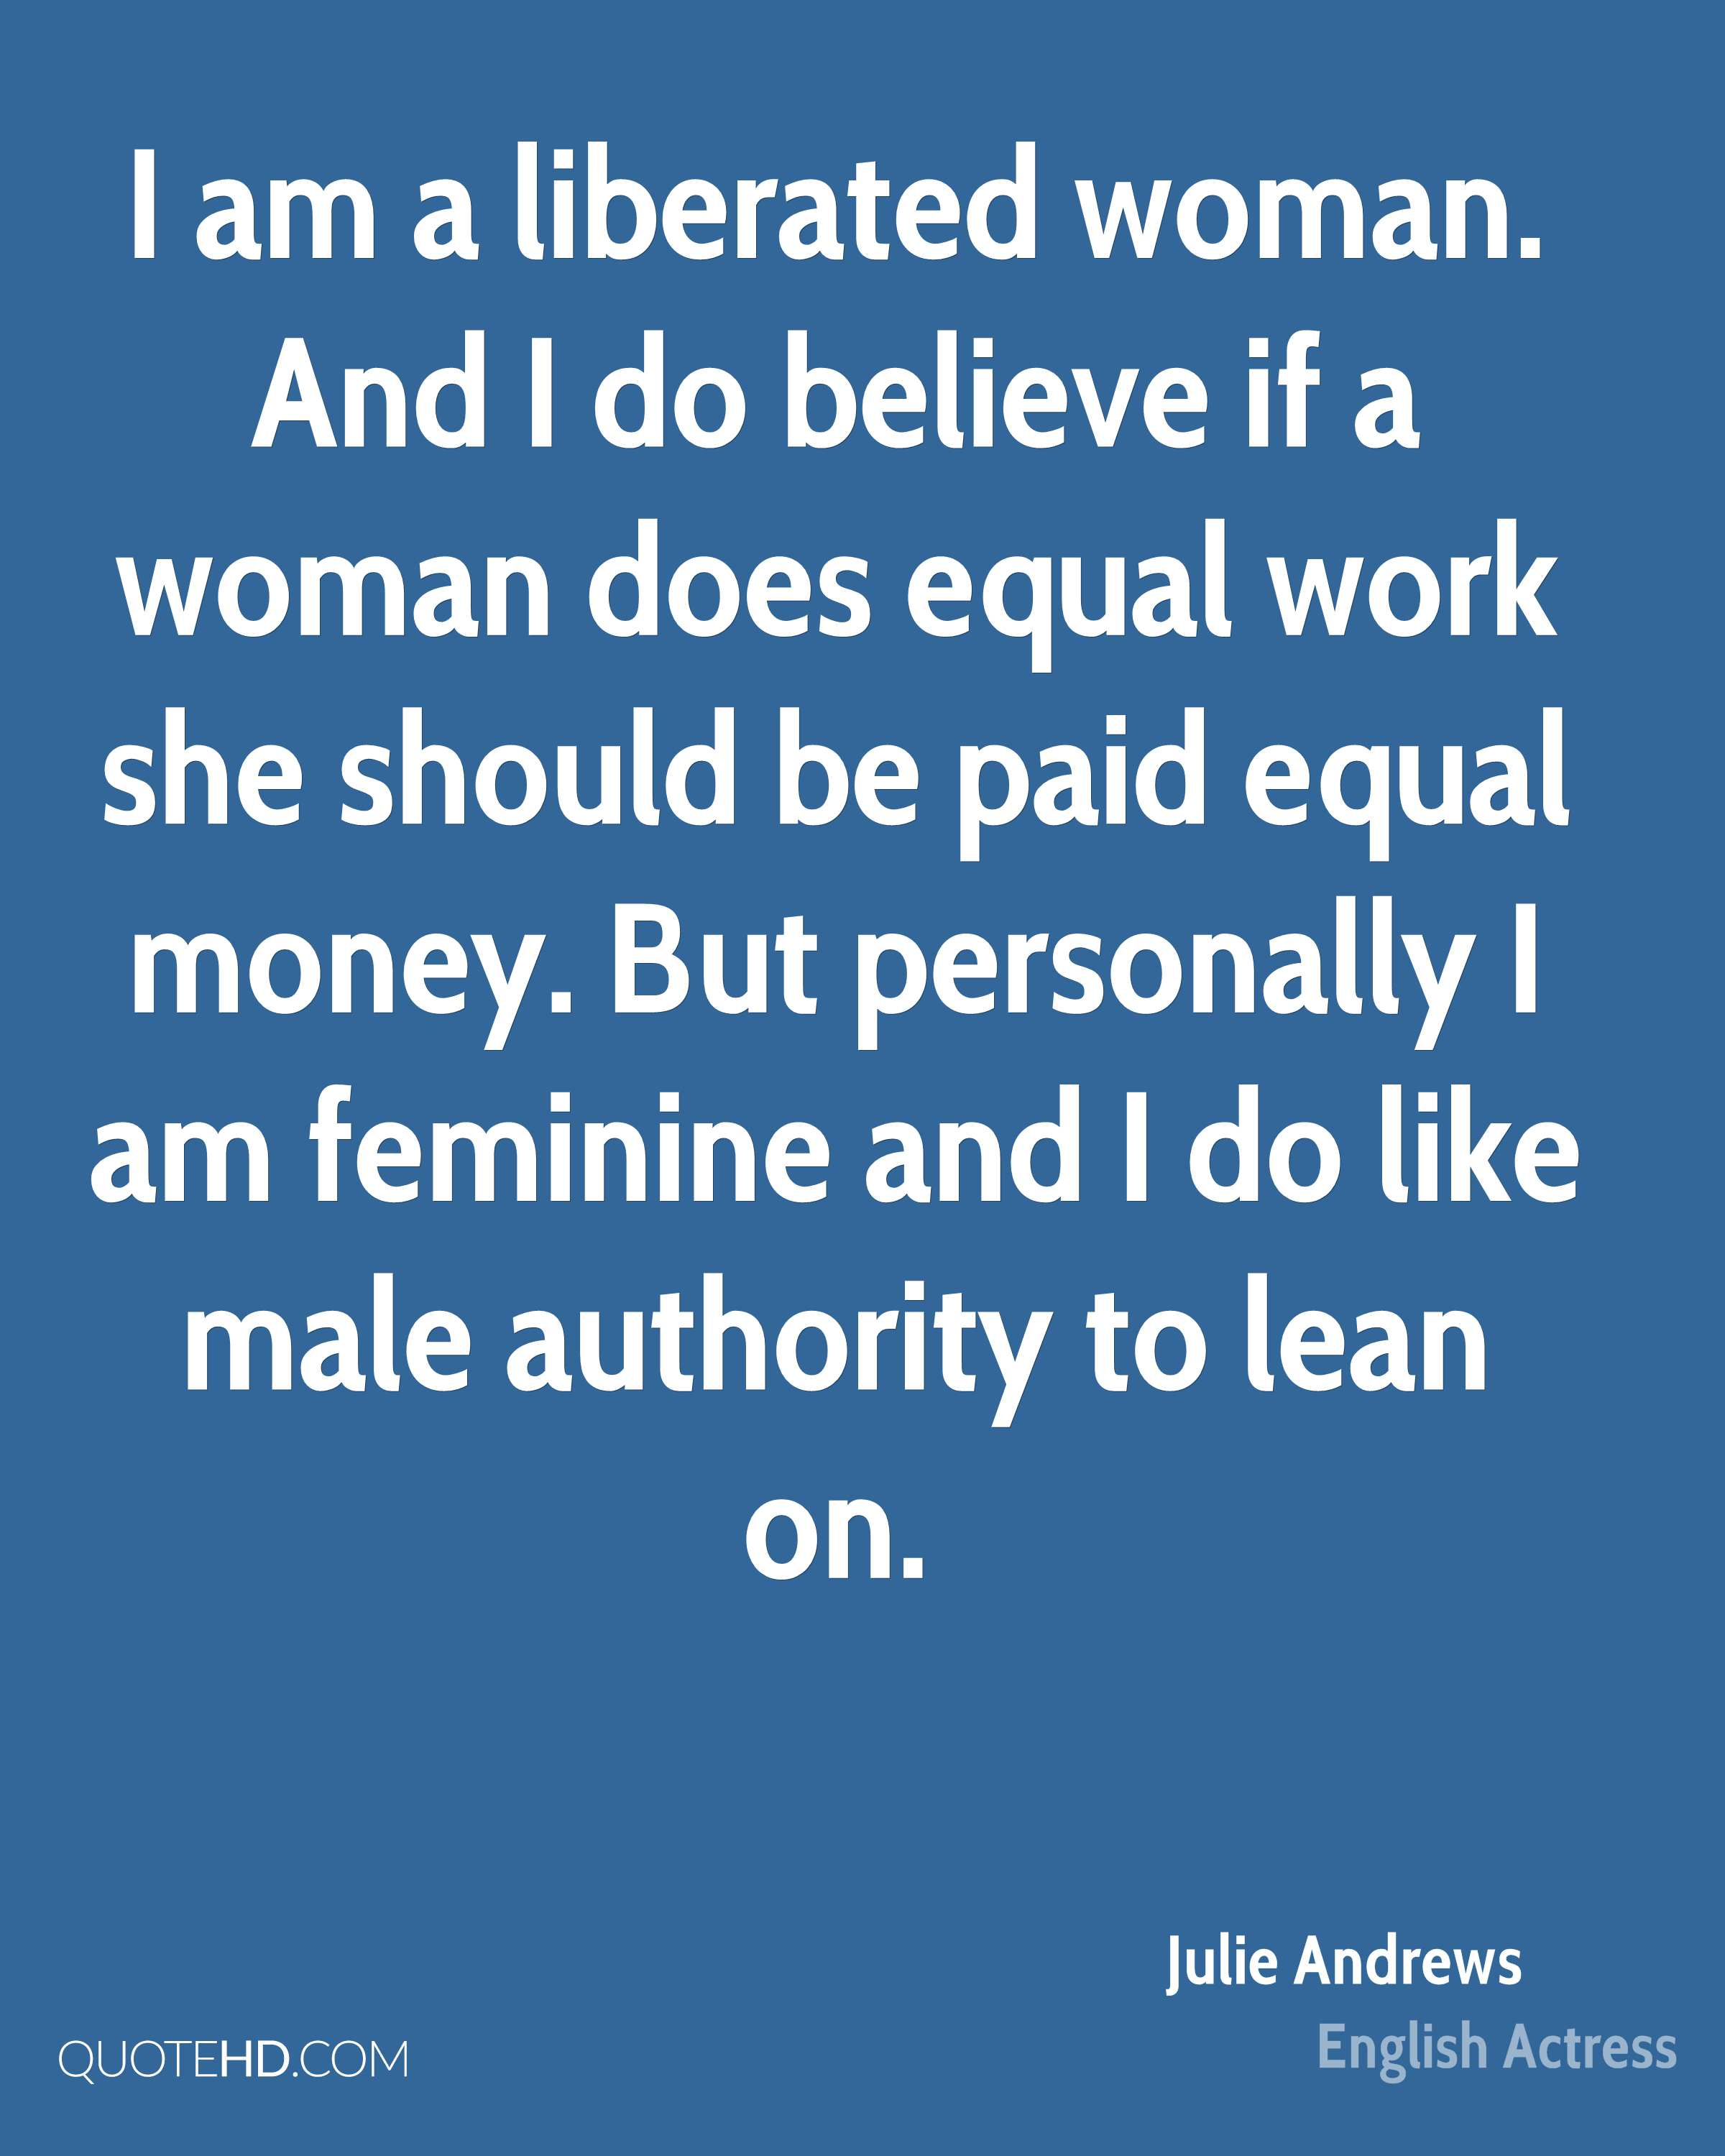 I am a liberated woman. And I do believe if a woman does equal work she should be paid equal money. But personally I am feminine and I do like male authority to lean on.